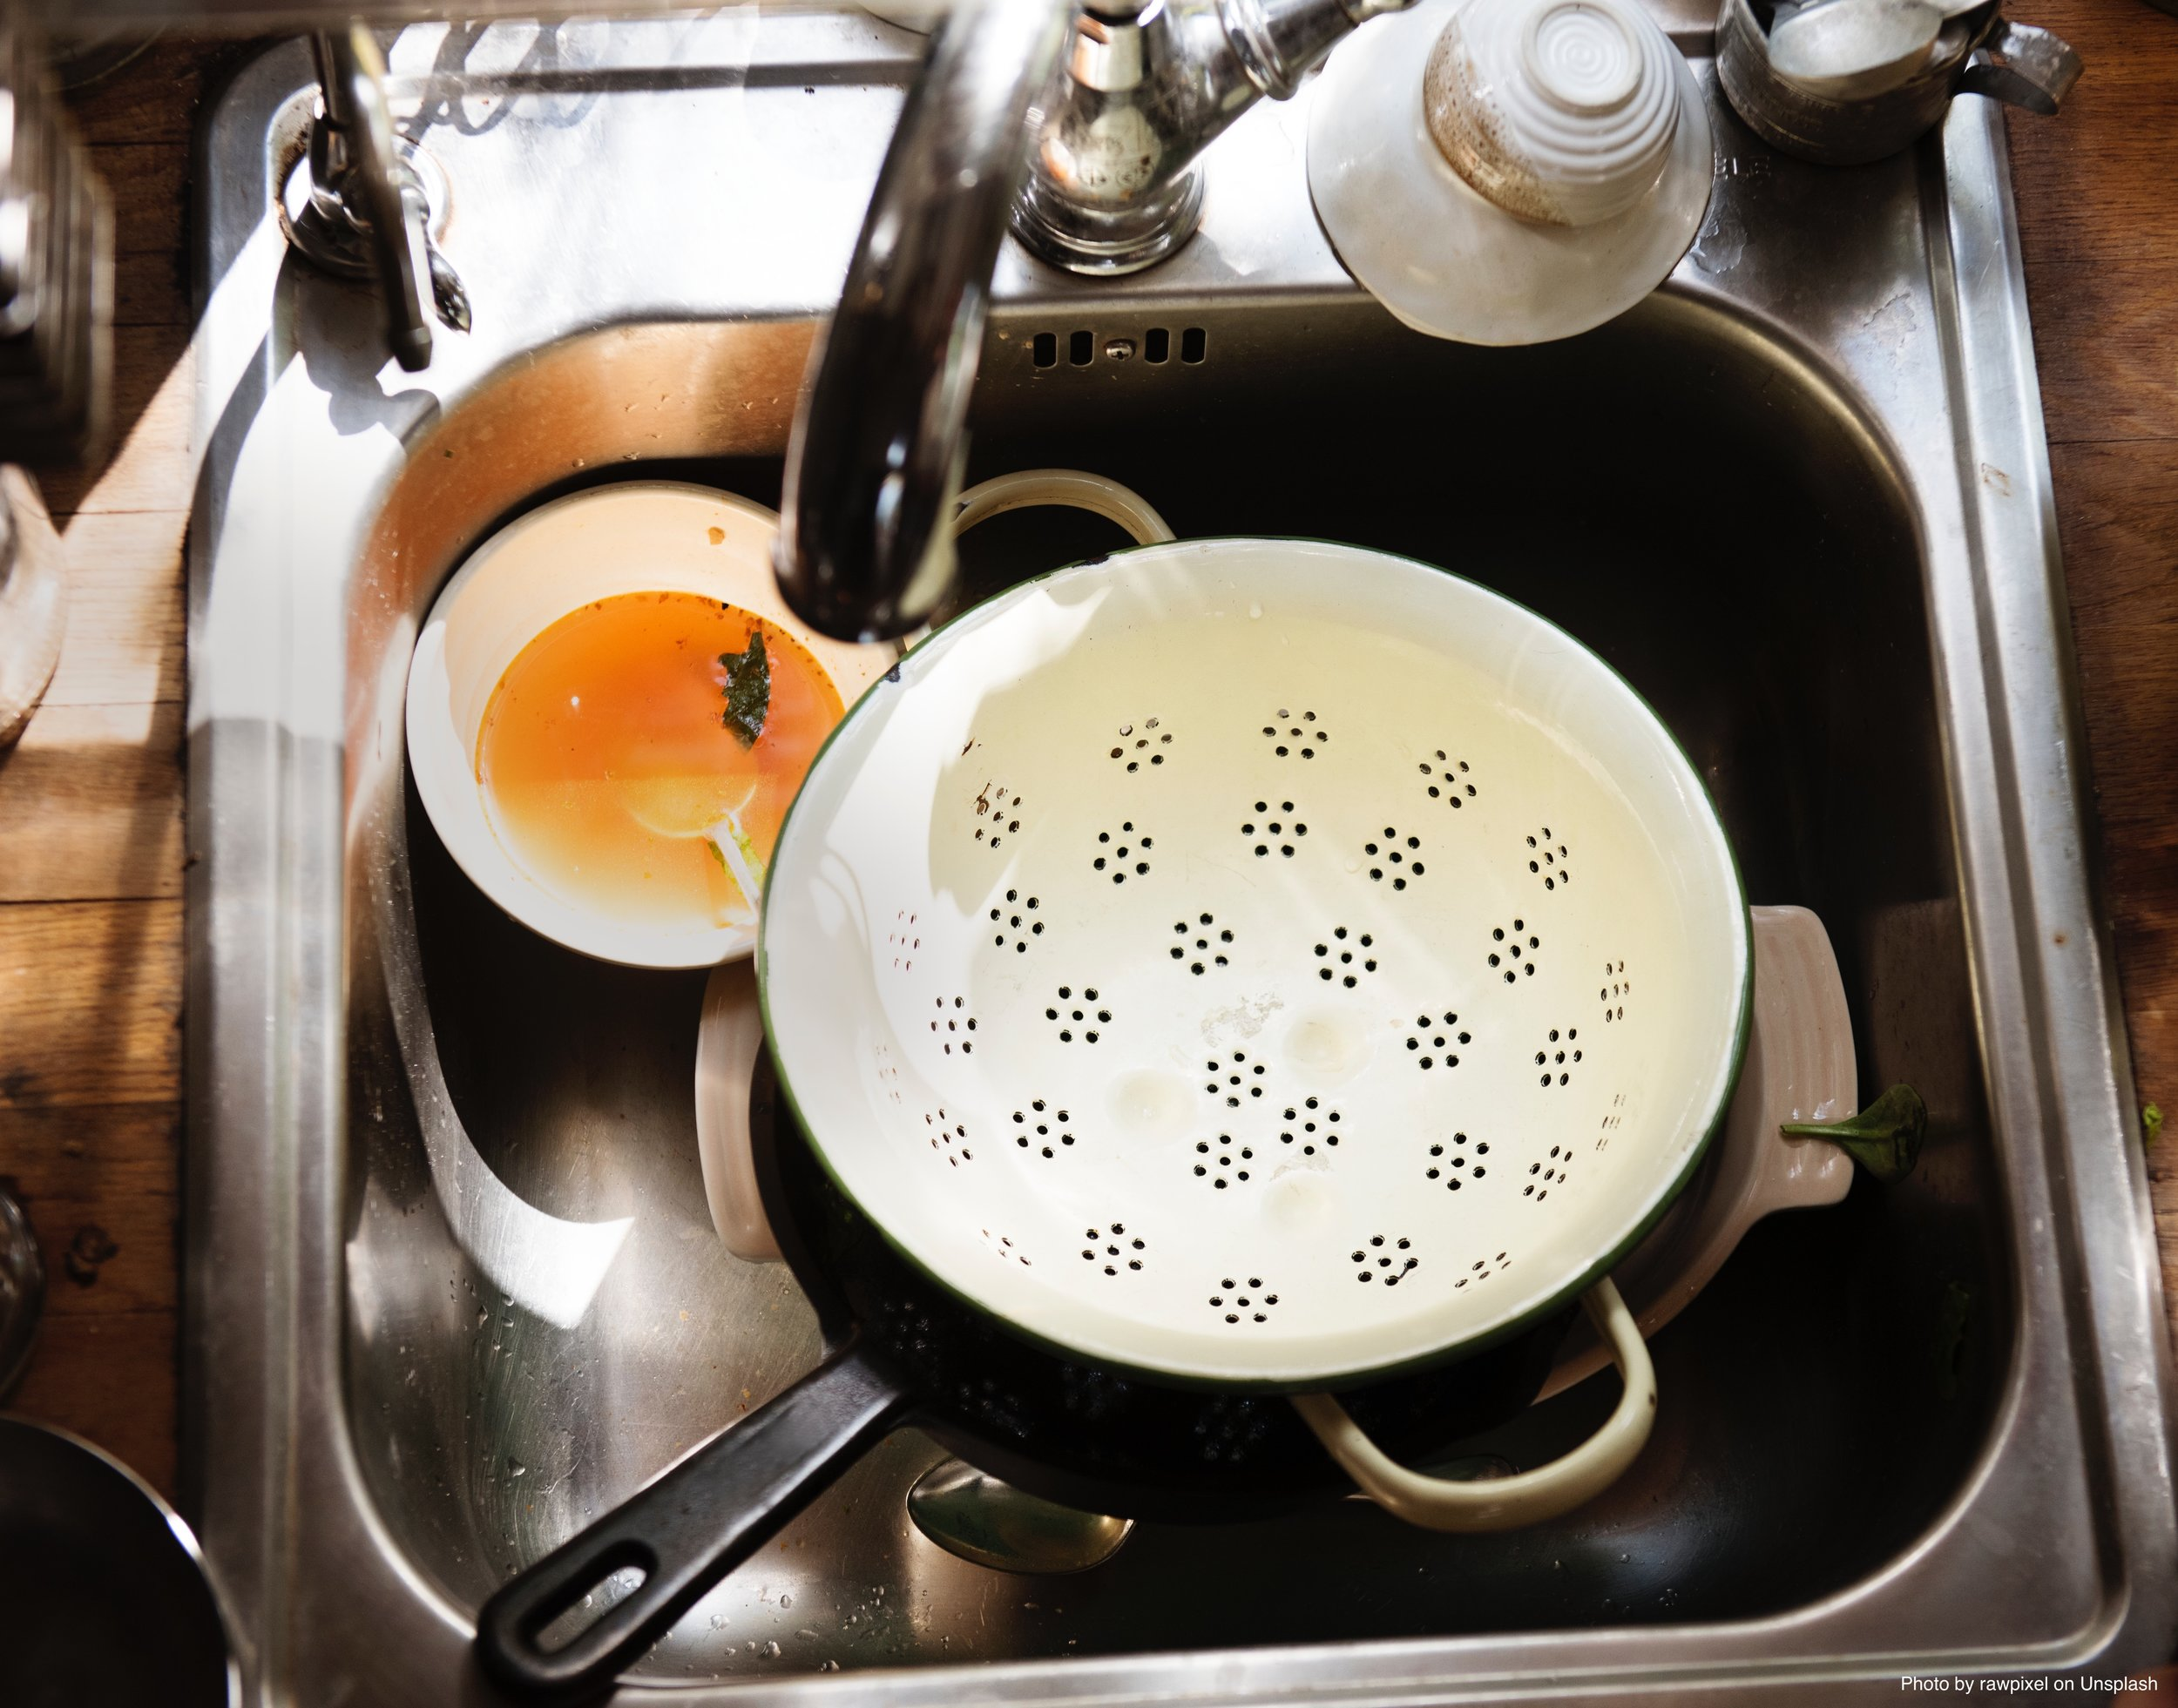 dishes in sink.jpg